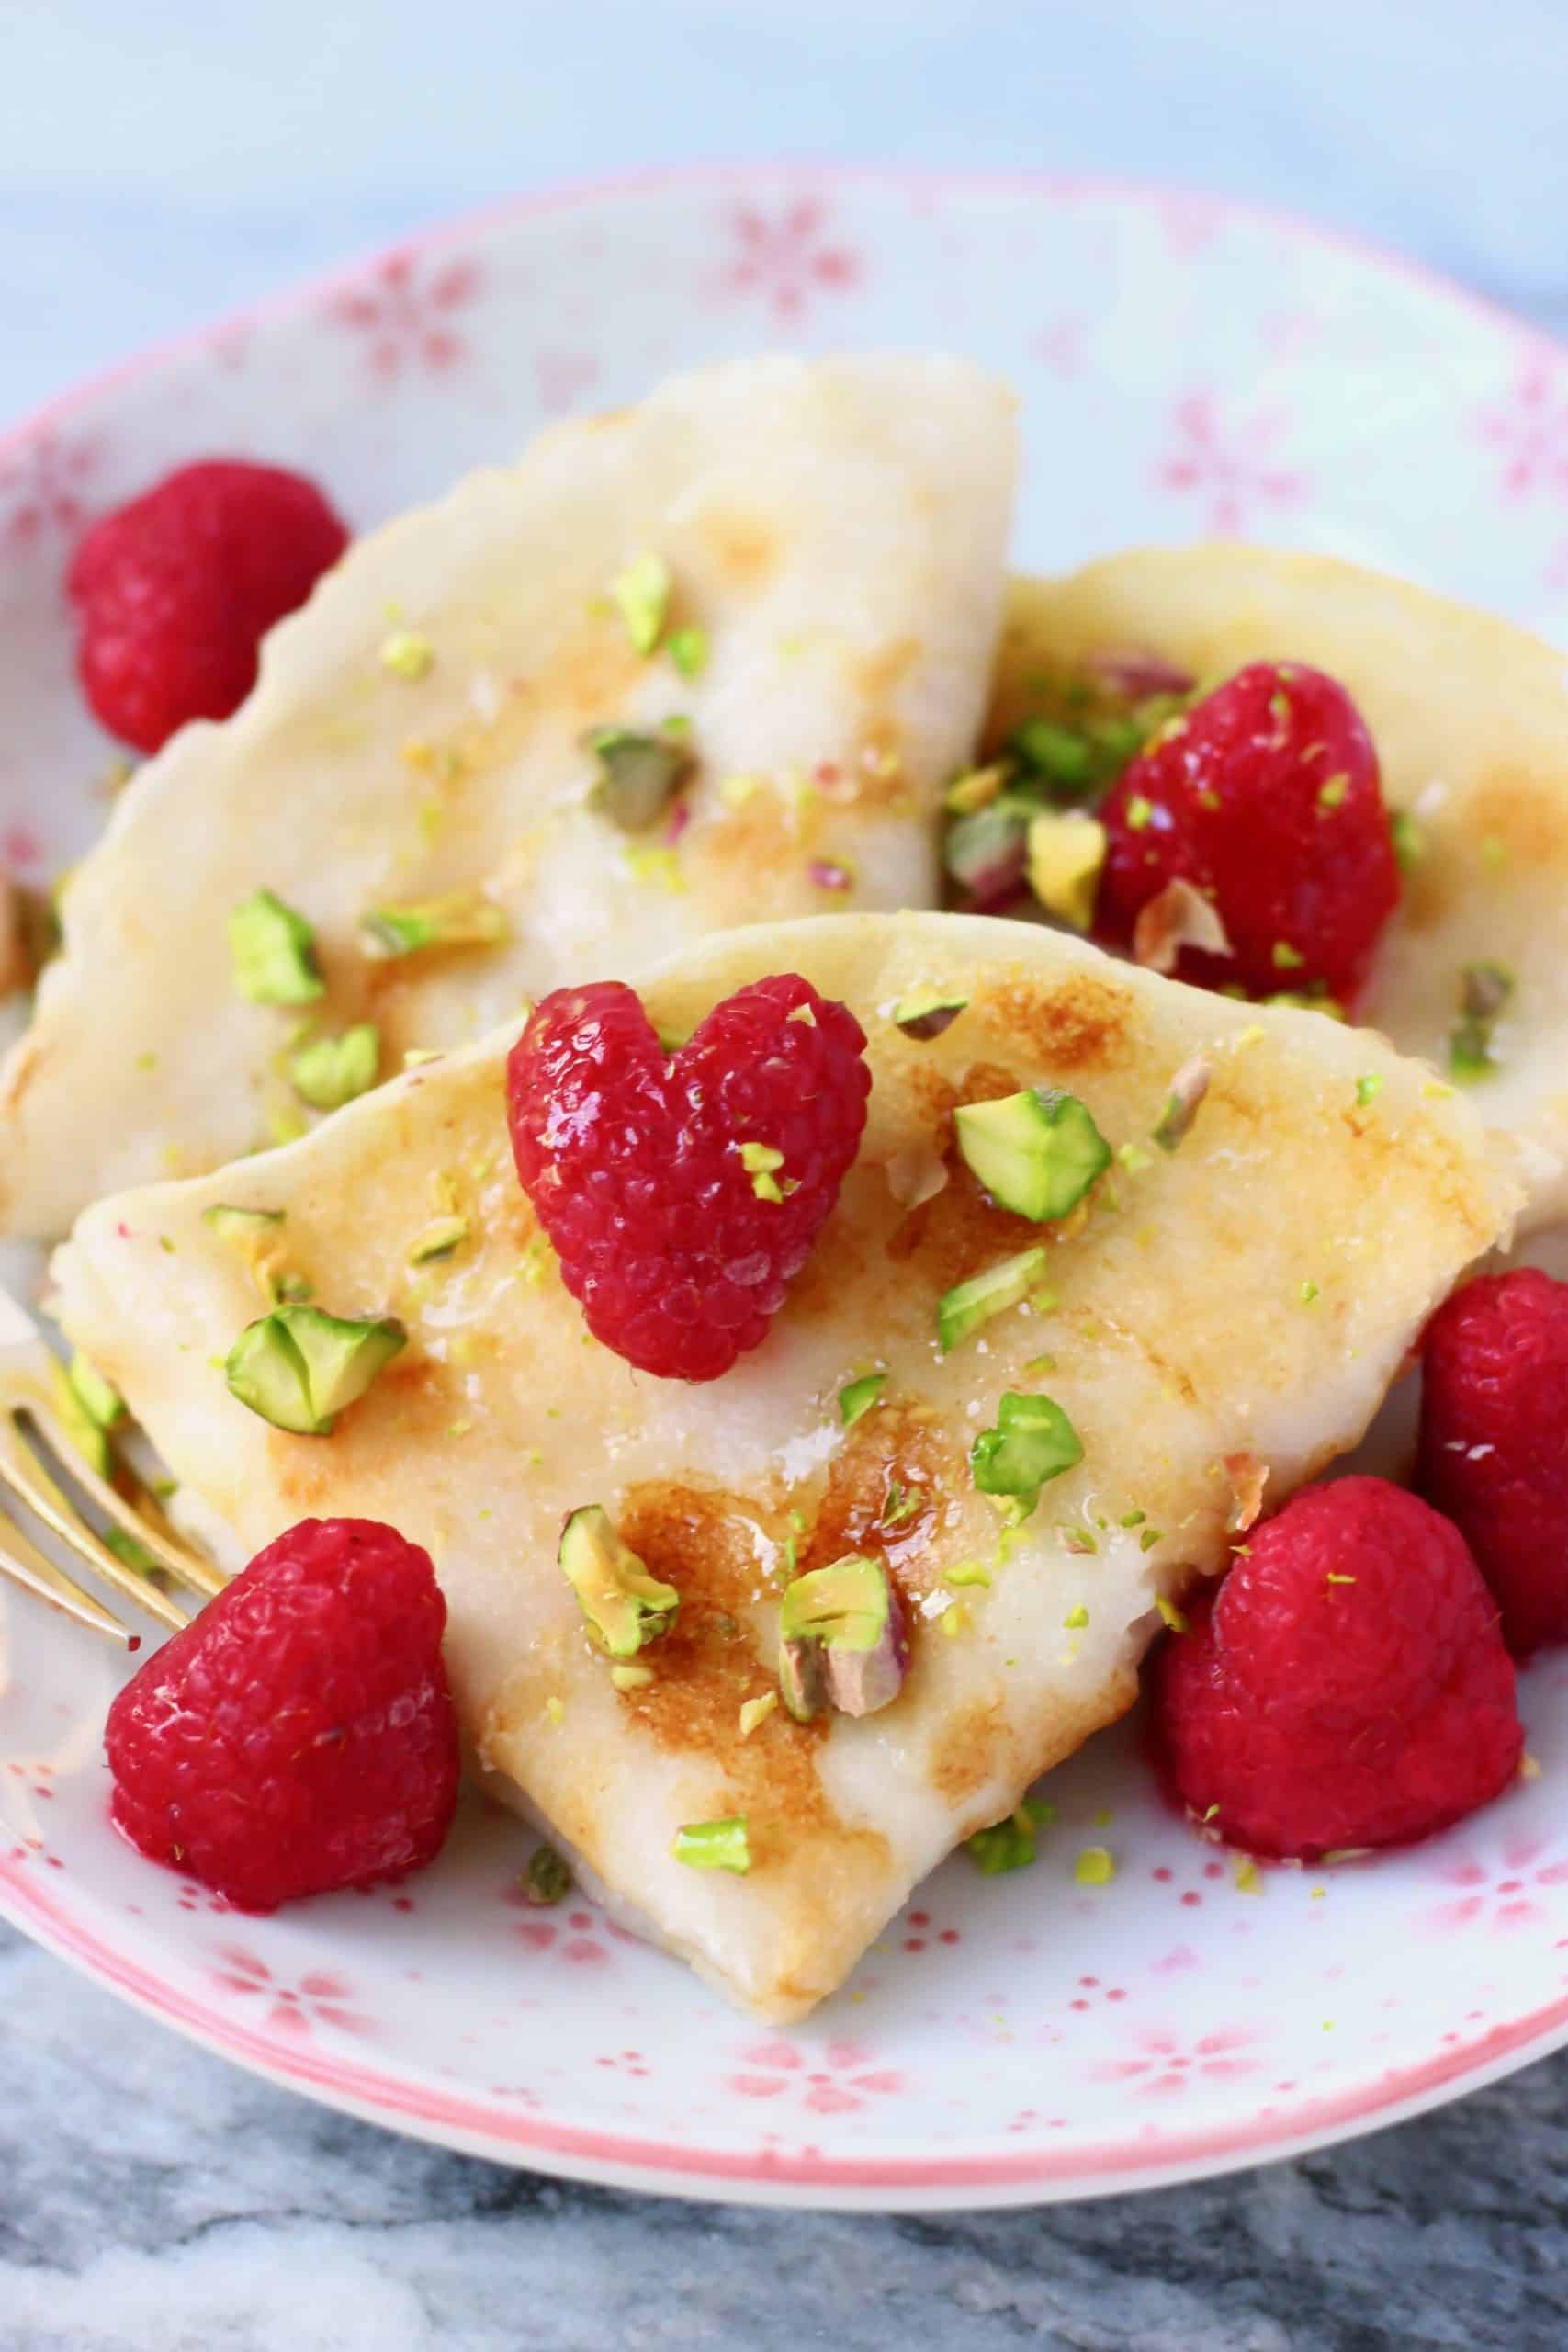 Three crepes folded into triangles decorated with raspberries